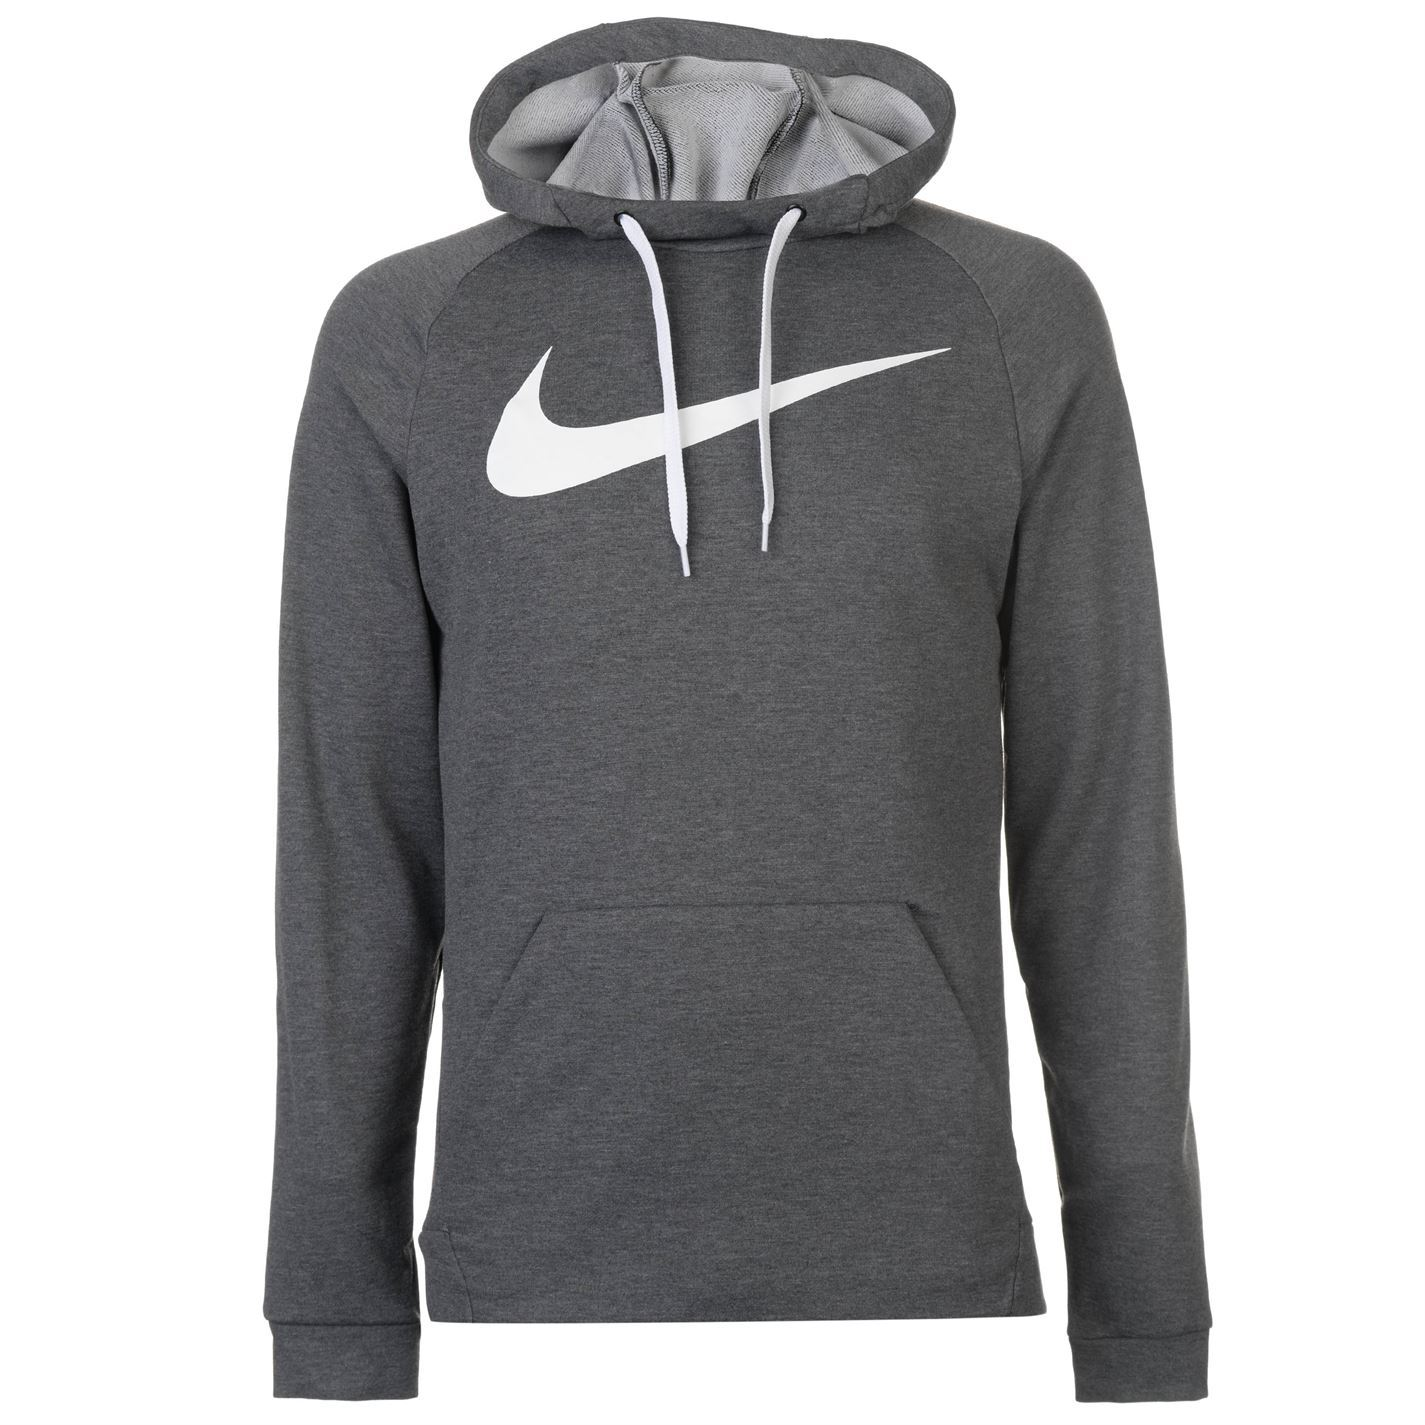 Nike-Dri-Fit-Swoosh-Pullover-Hoody-Mens-OTH-Hoodie-Sweatshirt-Sweater-Hooded-Top thumbnail 8